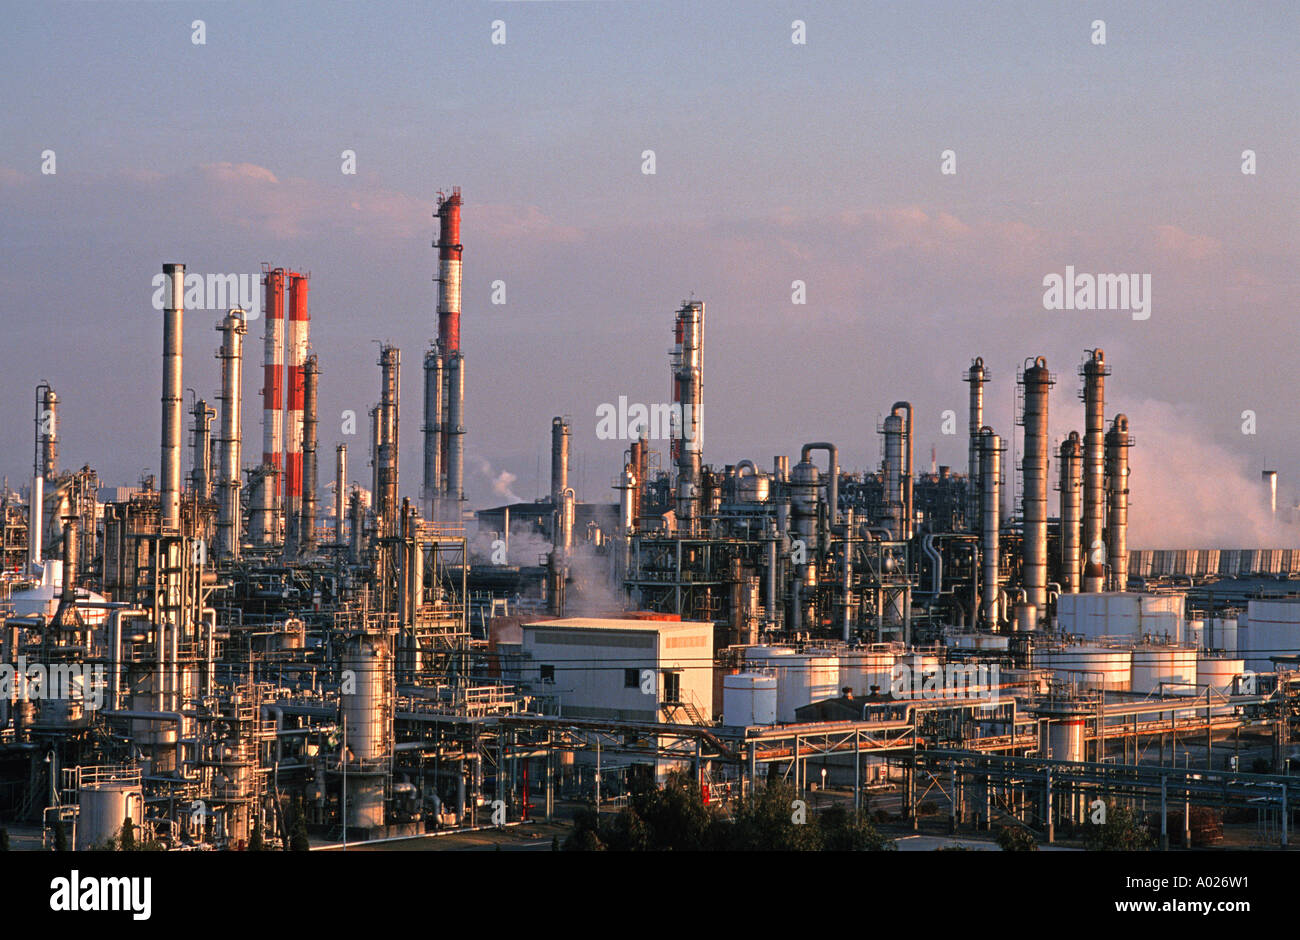 Industrial complex Petrochemical refinery Osaka Japan - Stock Image